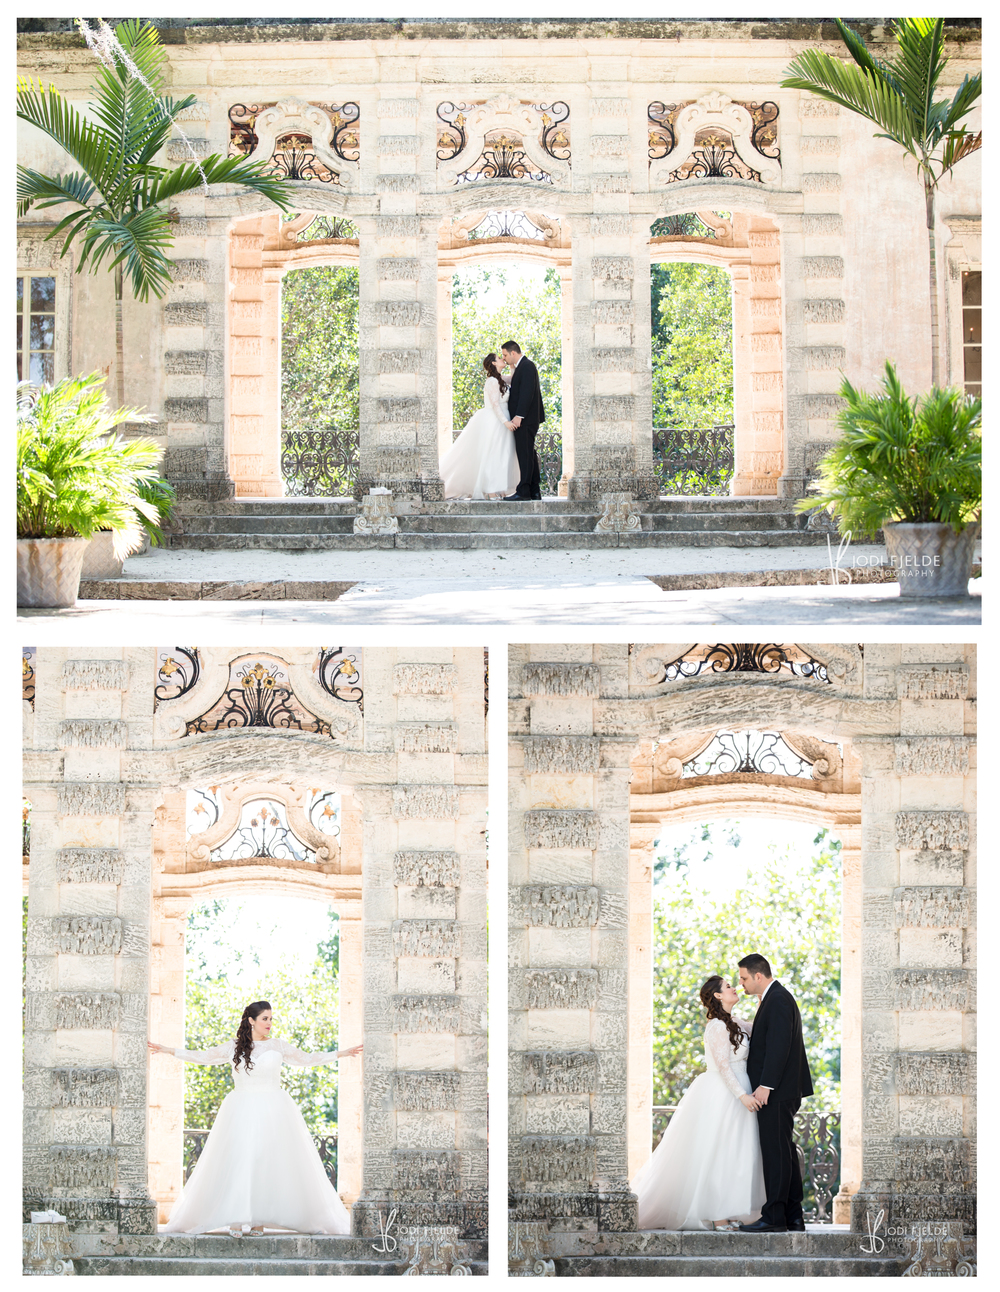 Vizcaya_Miami_Florida_Bridal_Wedding_Portraits_Jodi_Fjelde_Photography-6.jpg